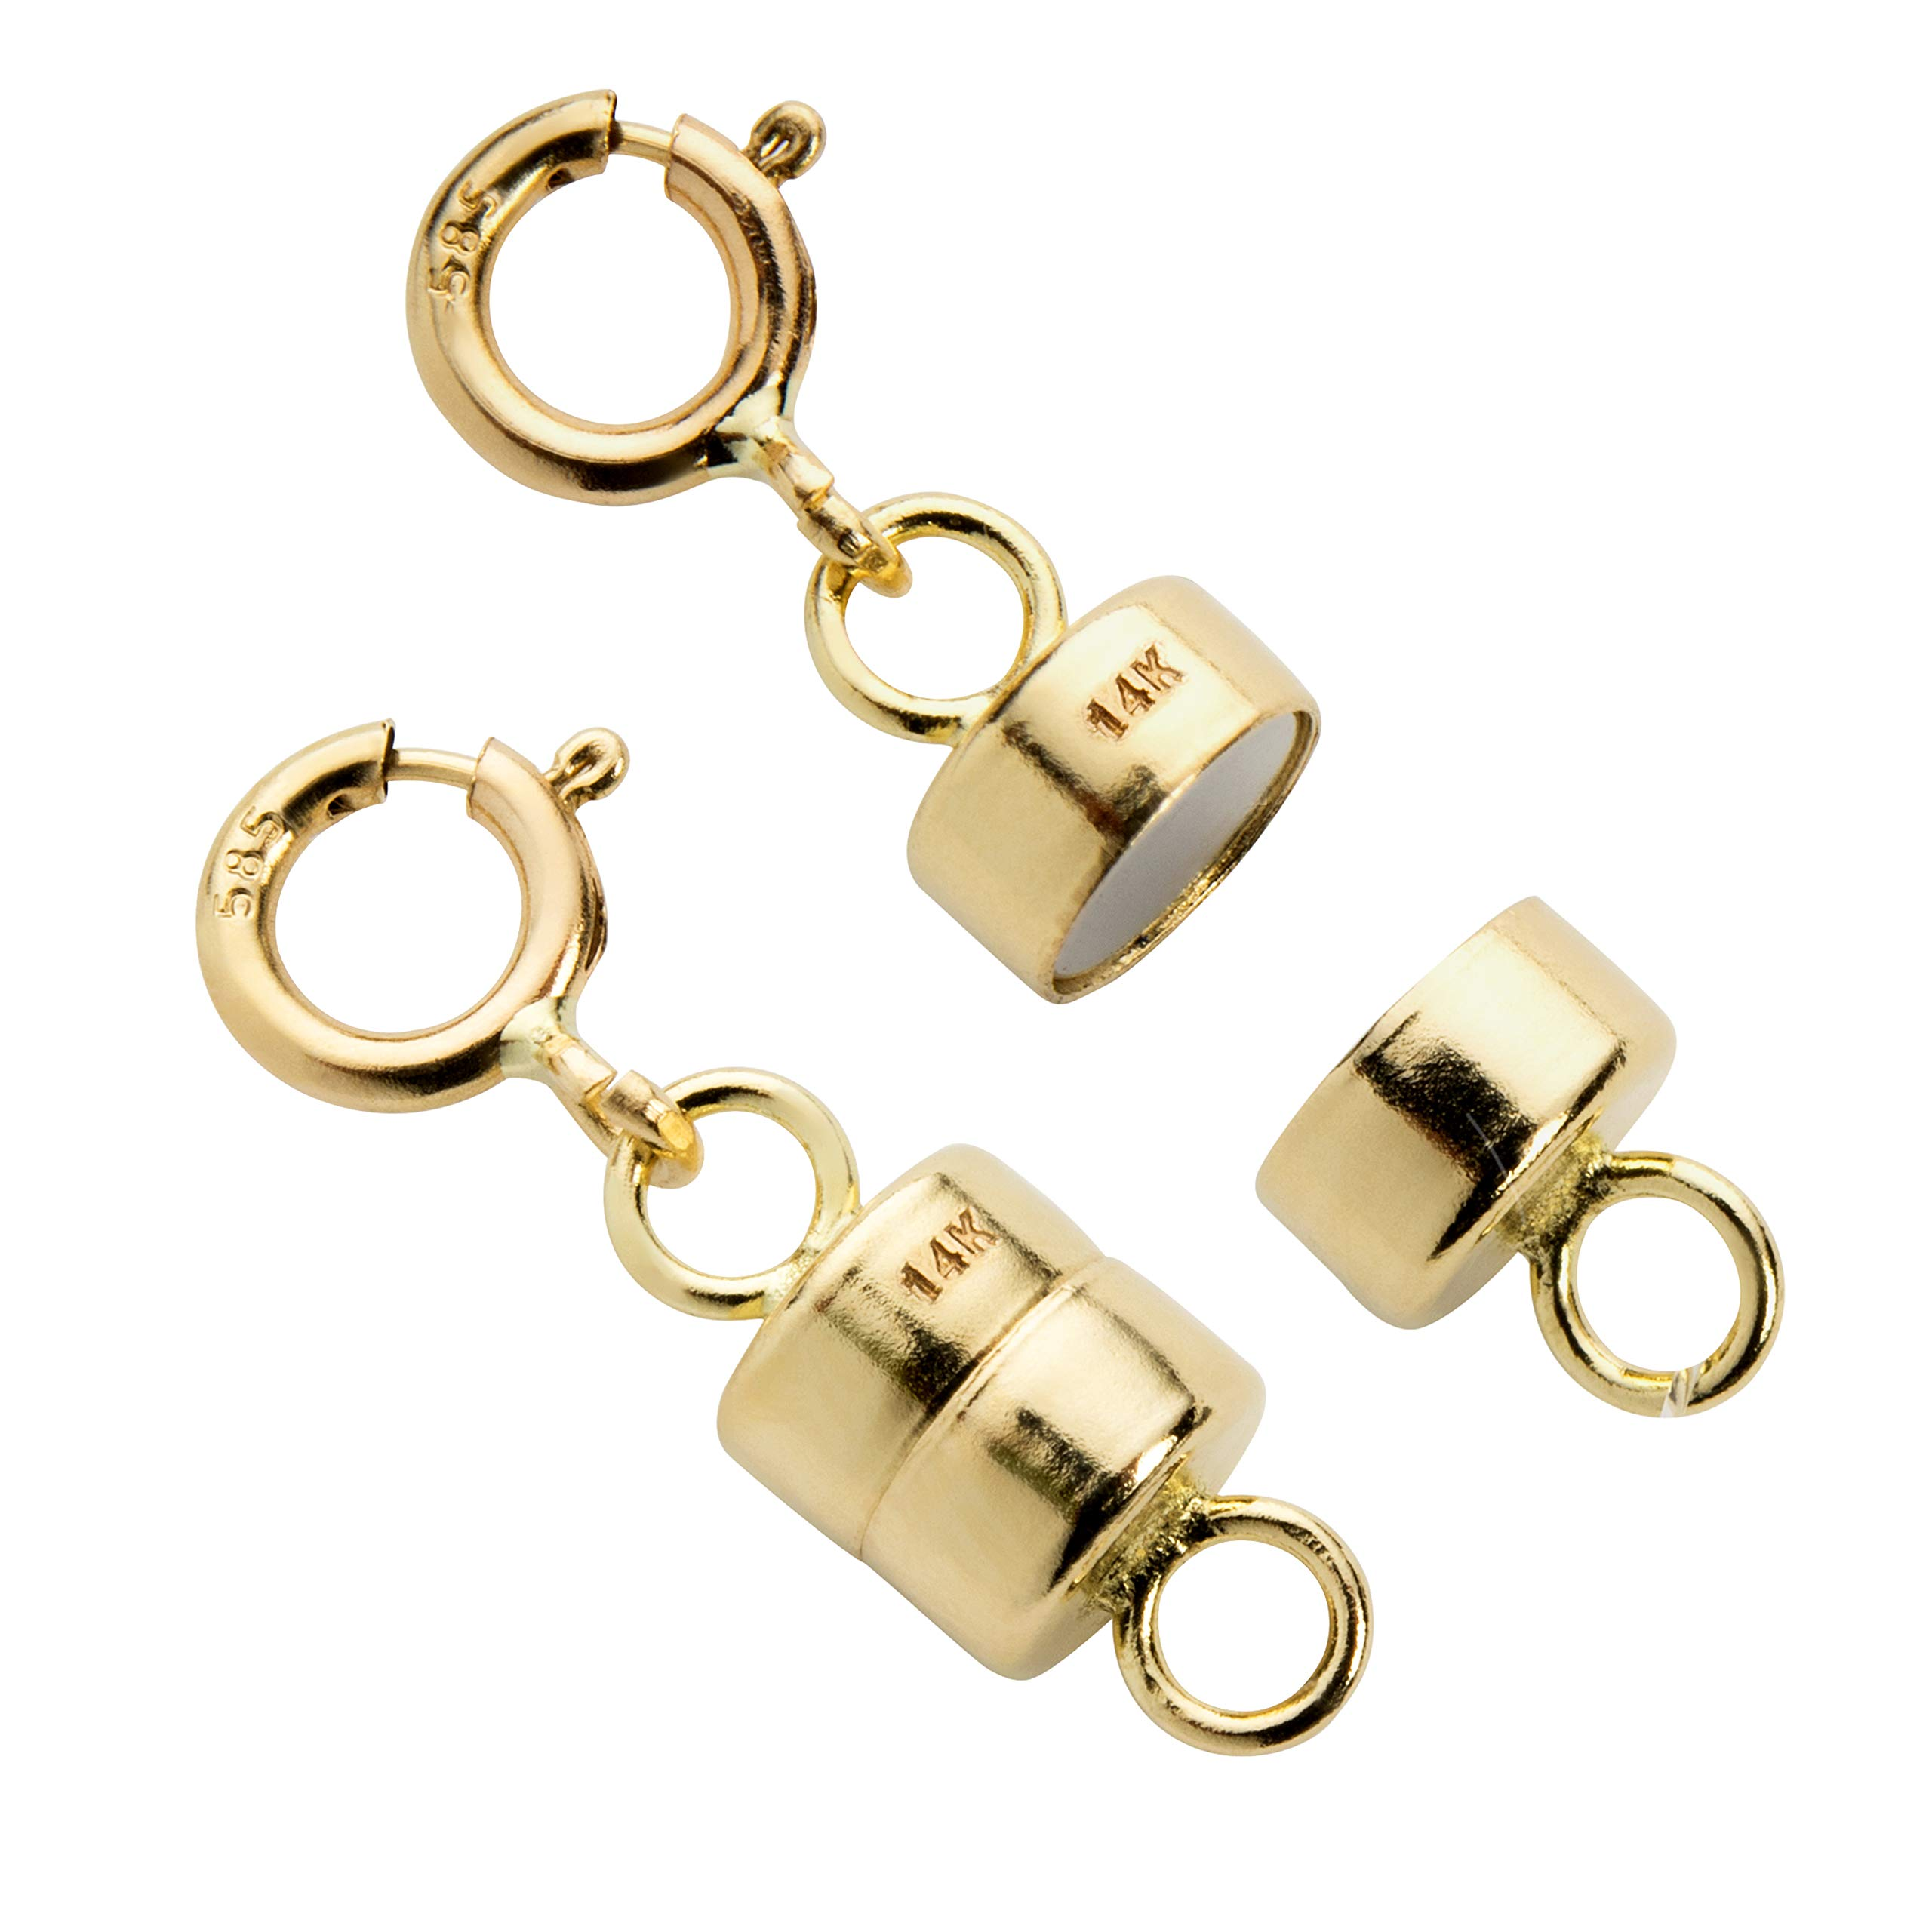 Everyday Elegance Jewelry 14K Yellow Gold Round Magnetic Clasp Converter for Necklace or Bracelet with Spring Ring, 2 Clasps